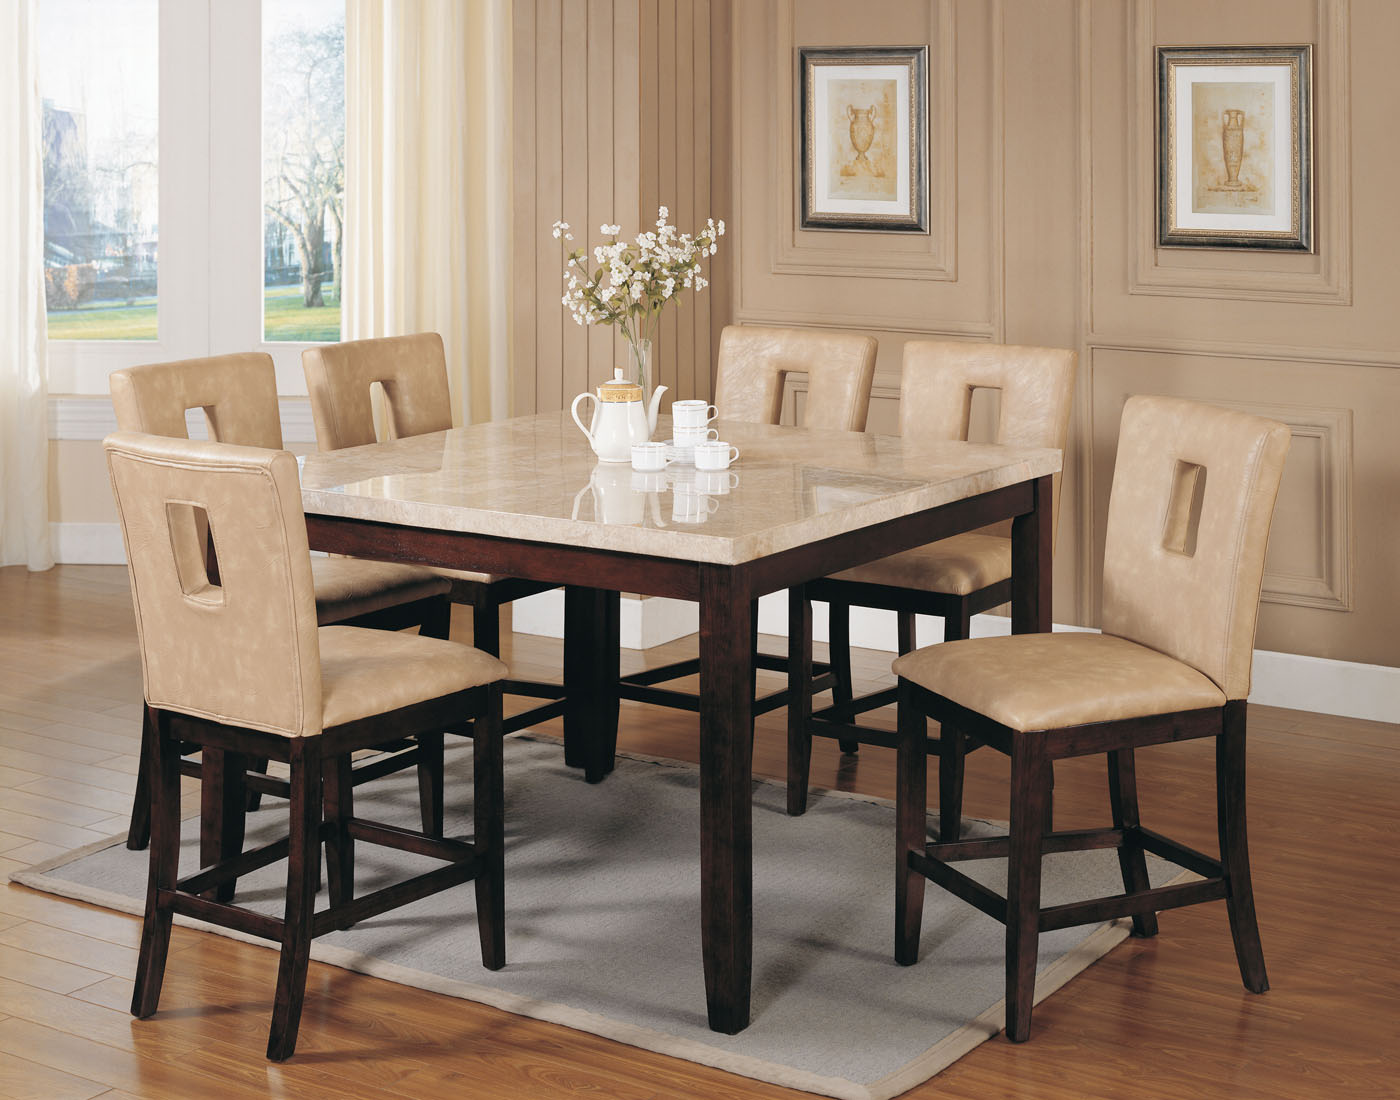 acme britney 7 pc square marble top counter height table set with cut out back counter height chairs marble top kitchen table Acme Britney 7 pc Square Marble Top Counter Height Table Set with Cut out Back Counter Height Chairs by Dining Rooms Outlet